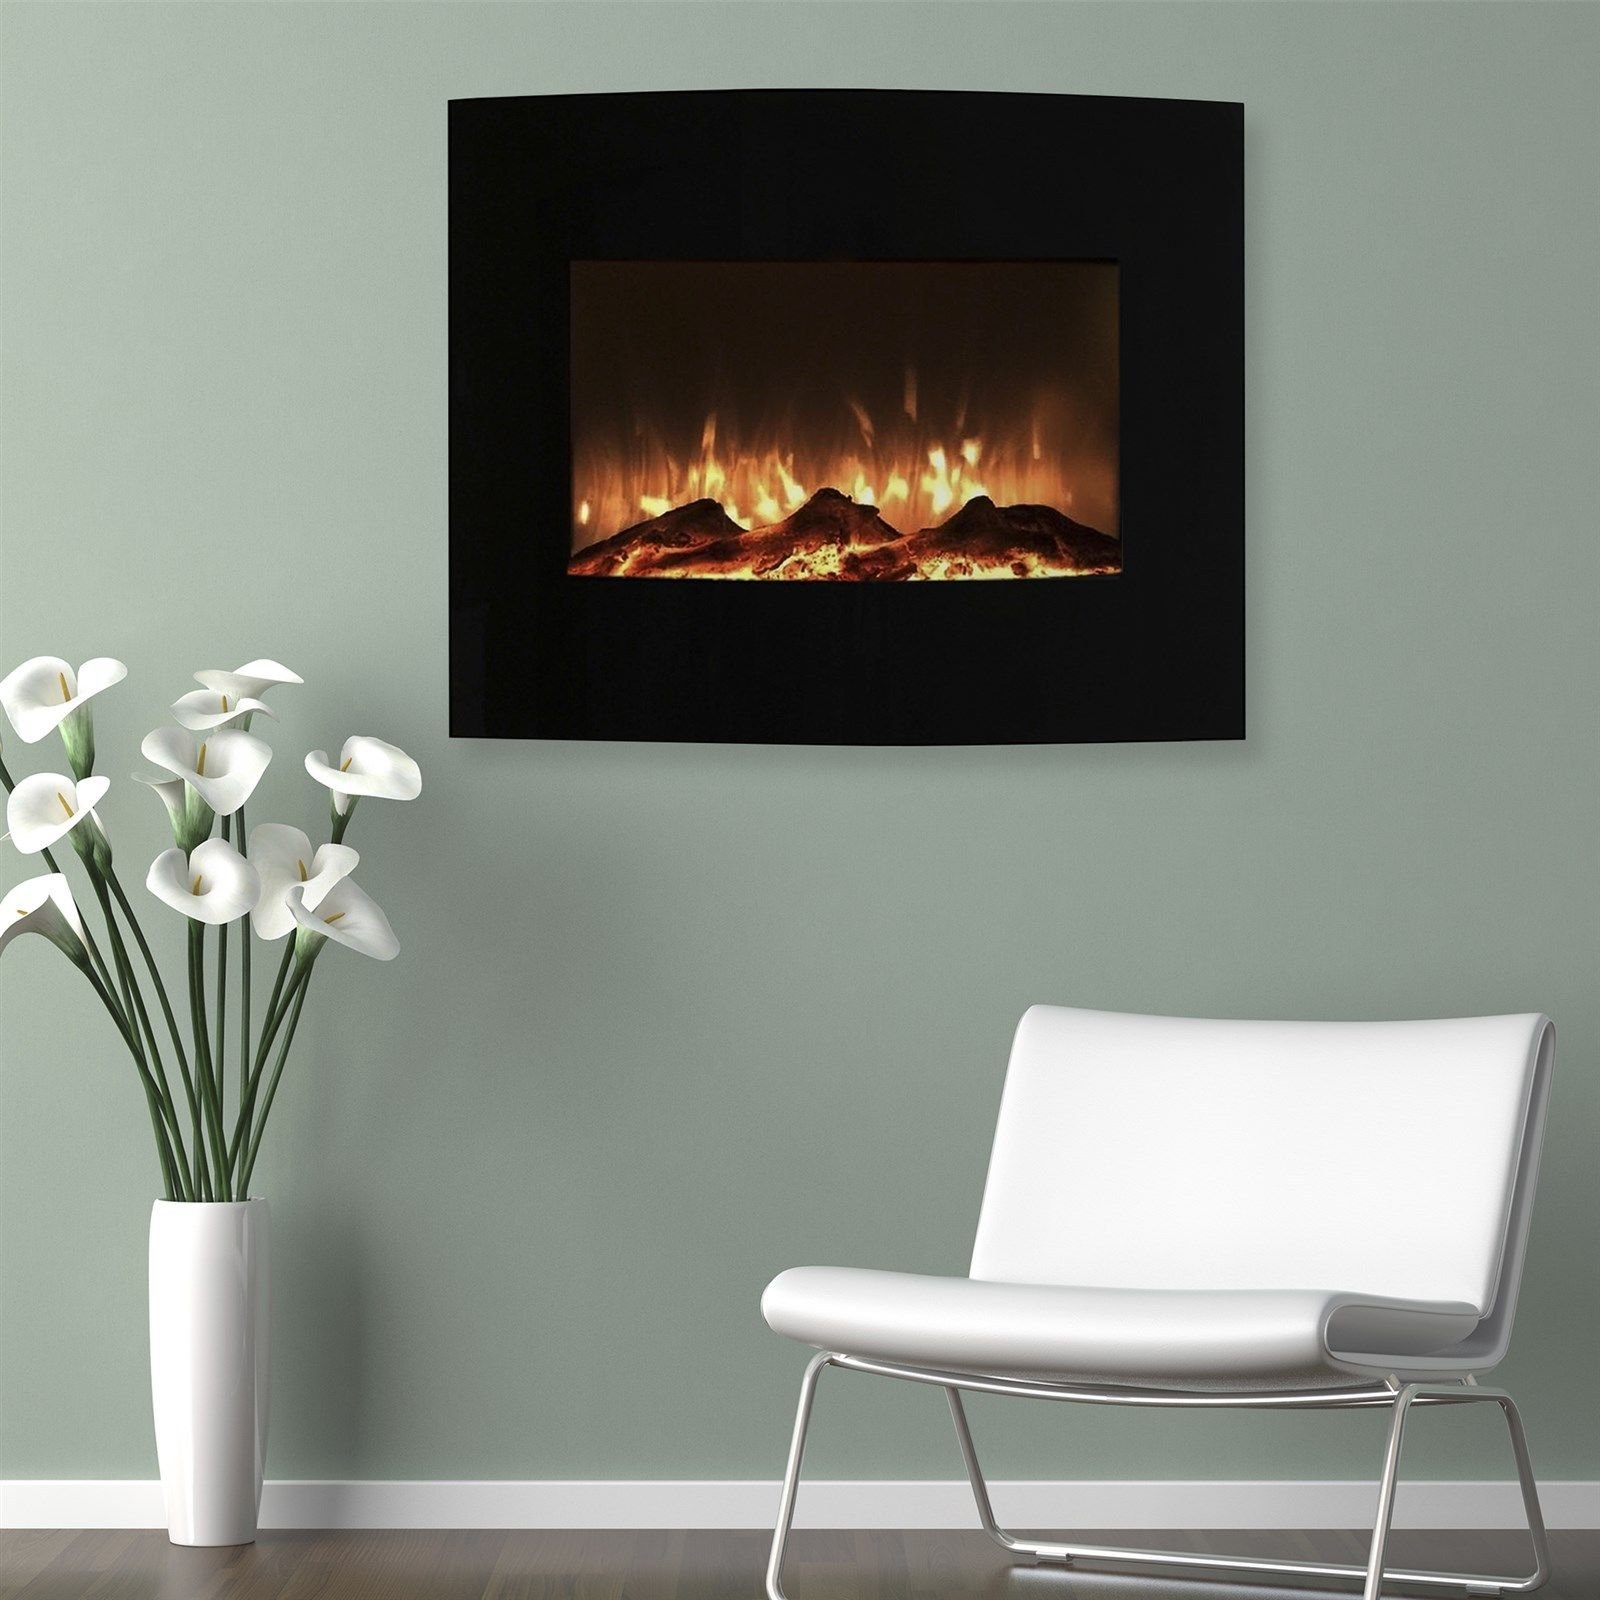 Mini Curved Black Fireplace Wall Mount & Floor Stand 25 x 20 Inches Remote by Love+Grace (Image #1)